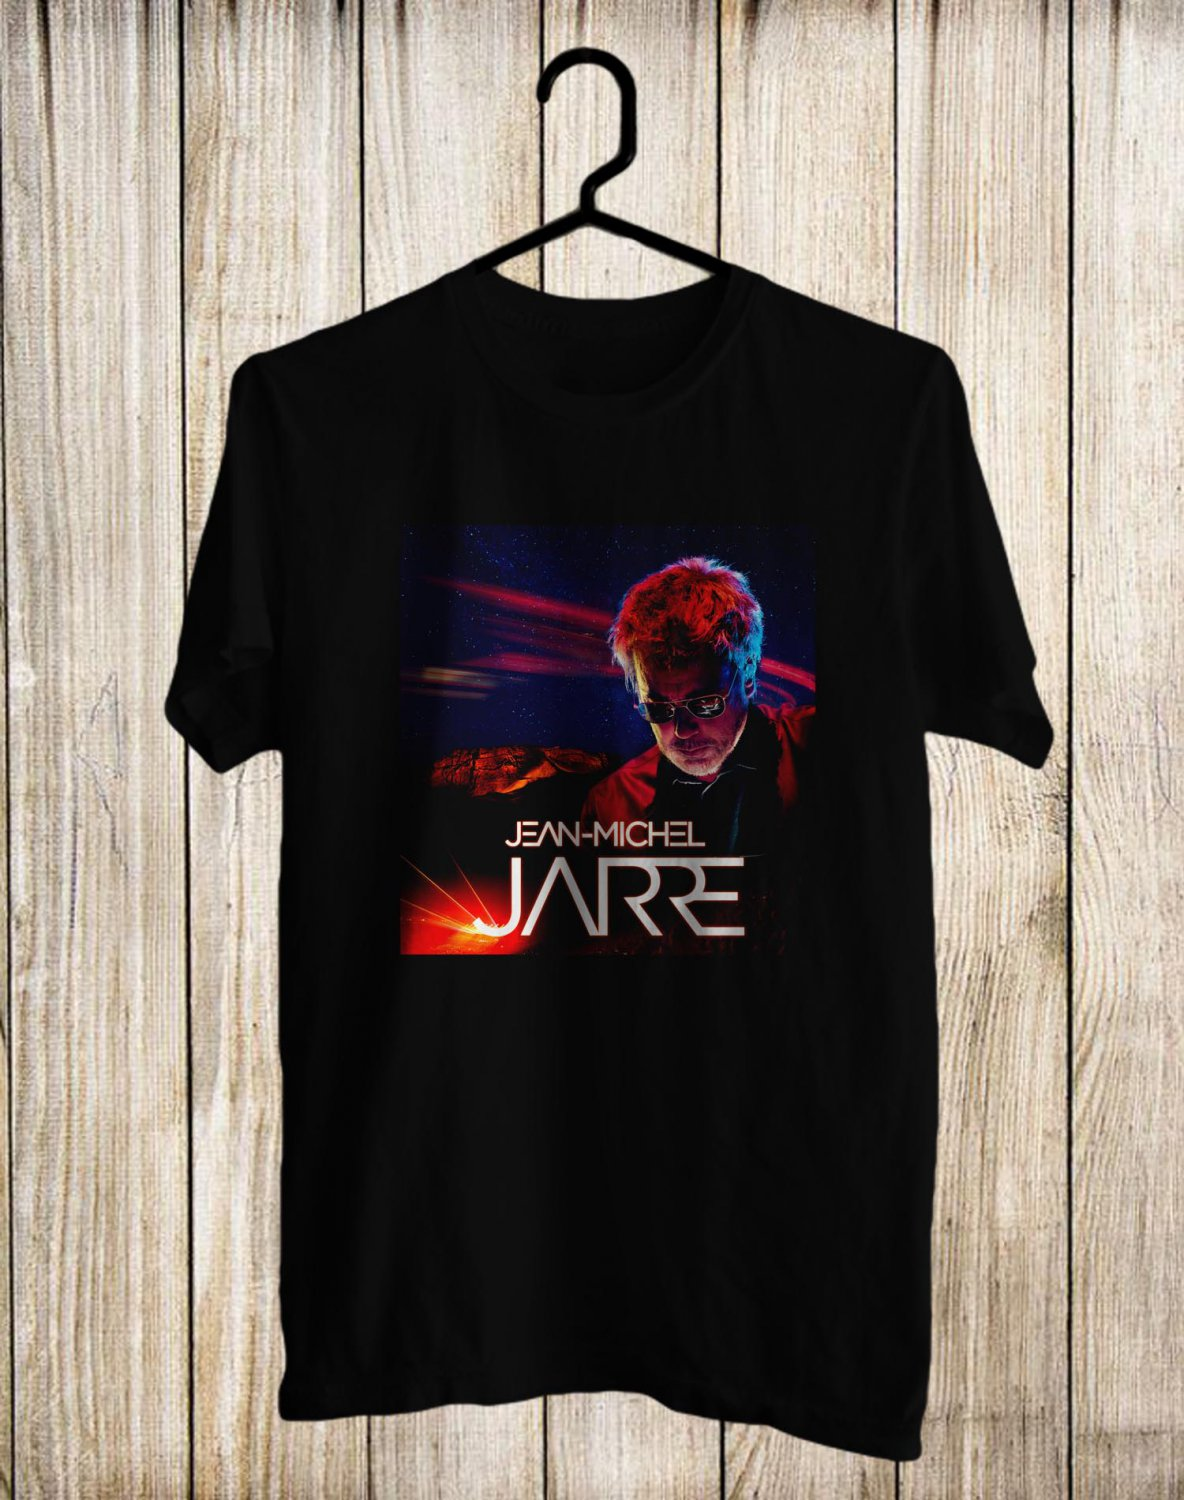 Jean-Michel Jarre Tour 2017 Black Tee's Front Side by Complexart z1